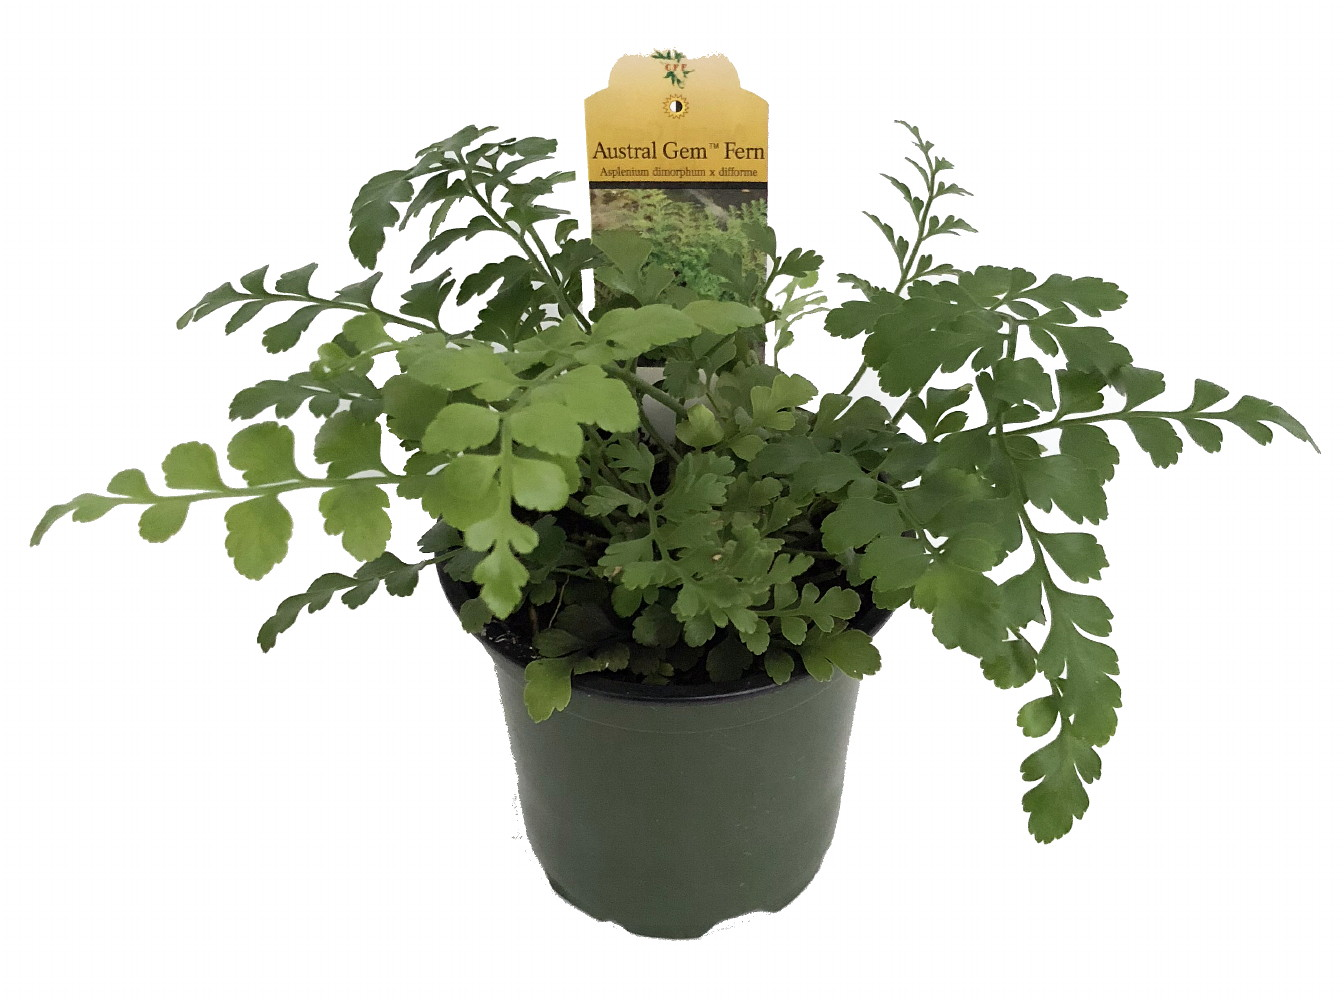 29 Easy Houseplants to Beat the Winter Blues! Austral Gem Fern Asplenium Dimorphum #HousePlants #EasytoGrow #Gardening #LowMaintenance #HomeDecor #IndoorPlants #DIY